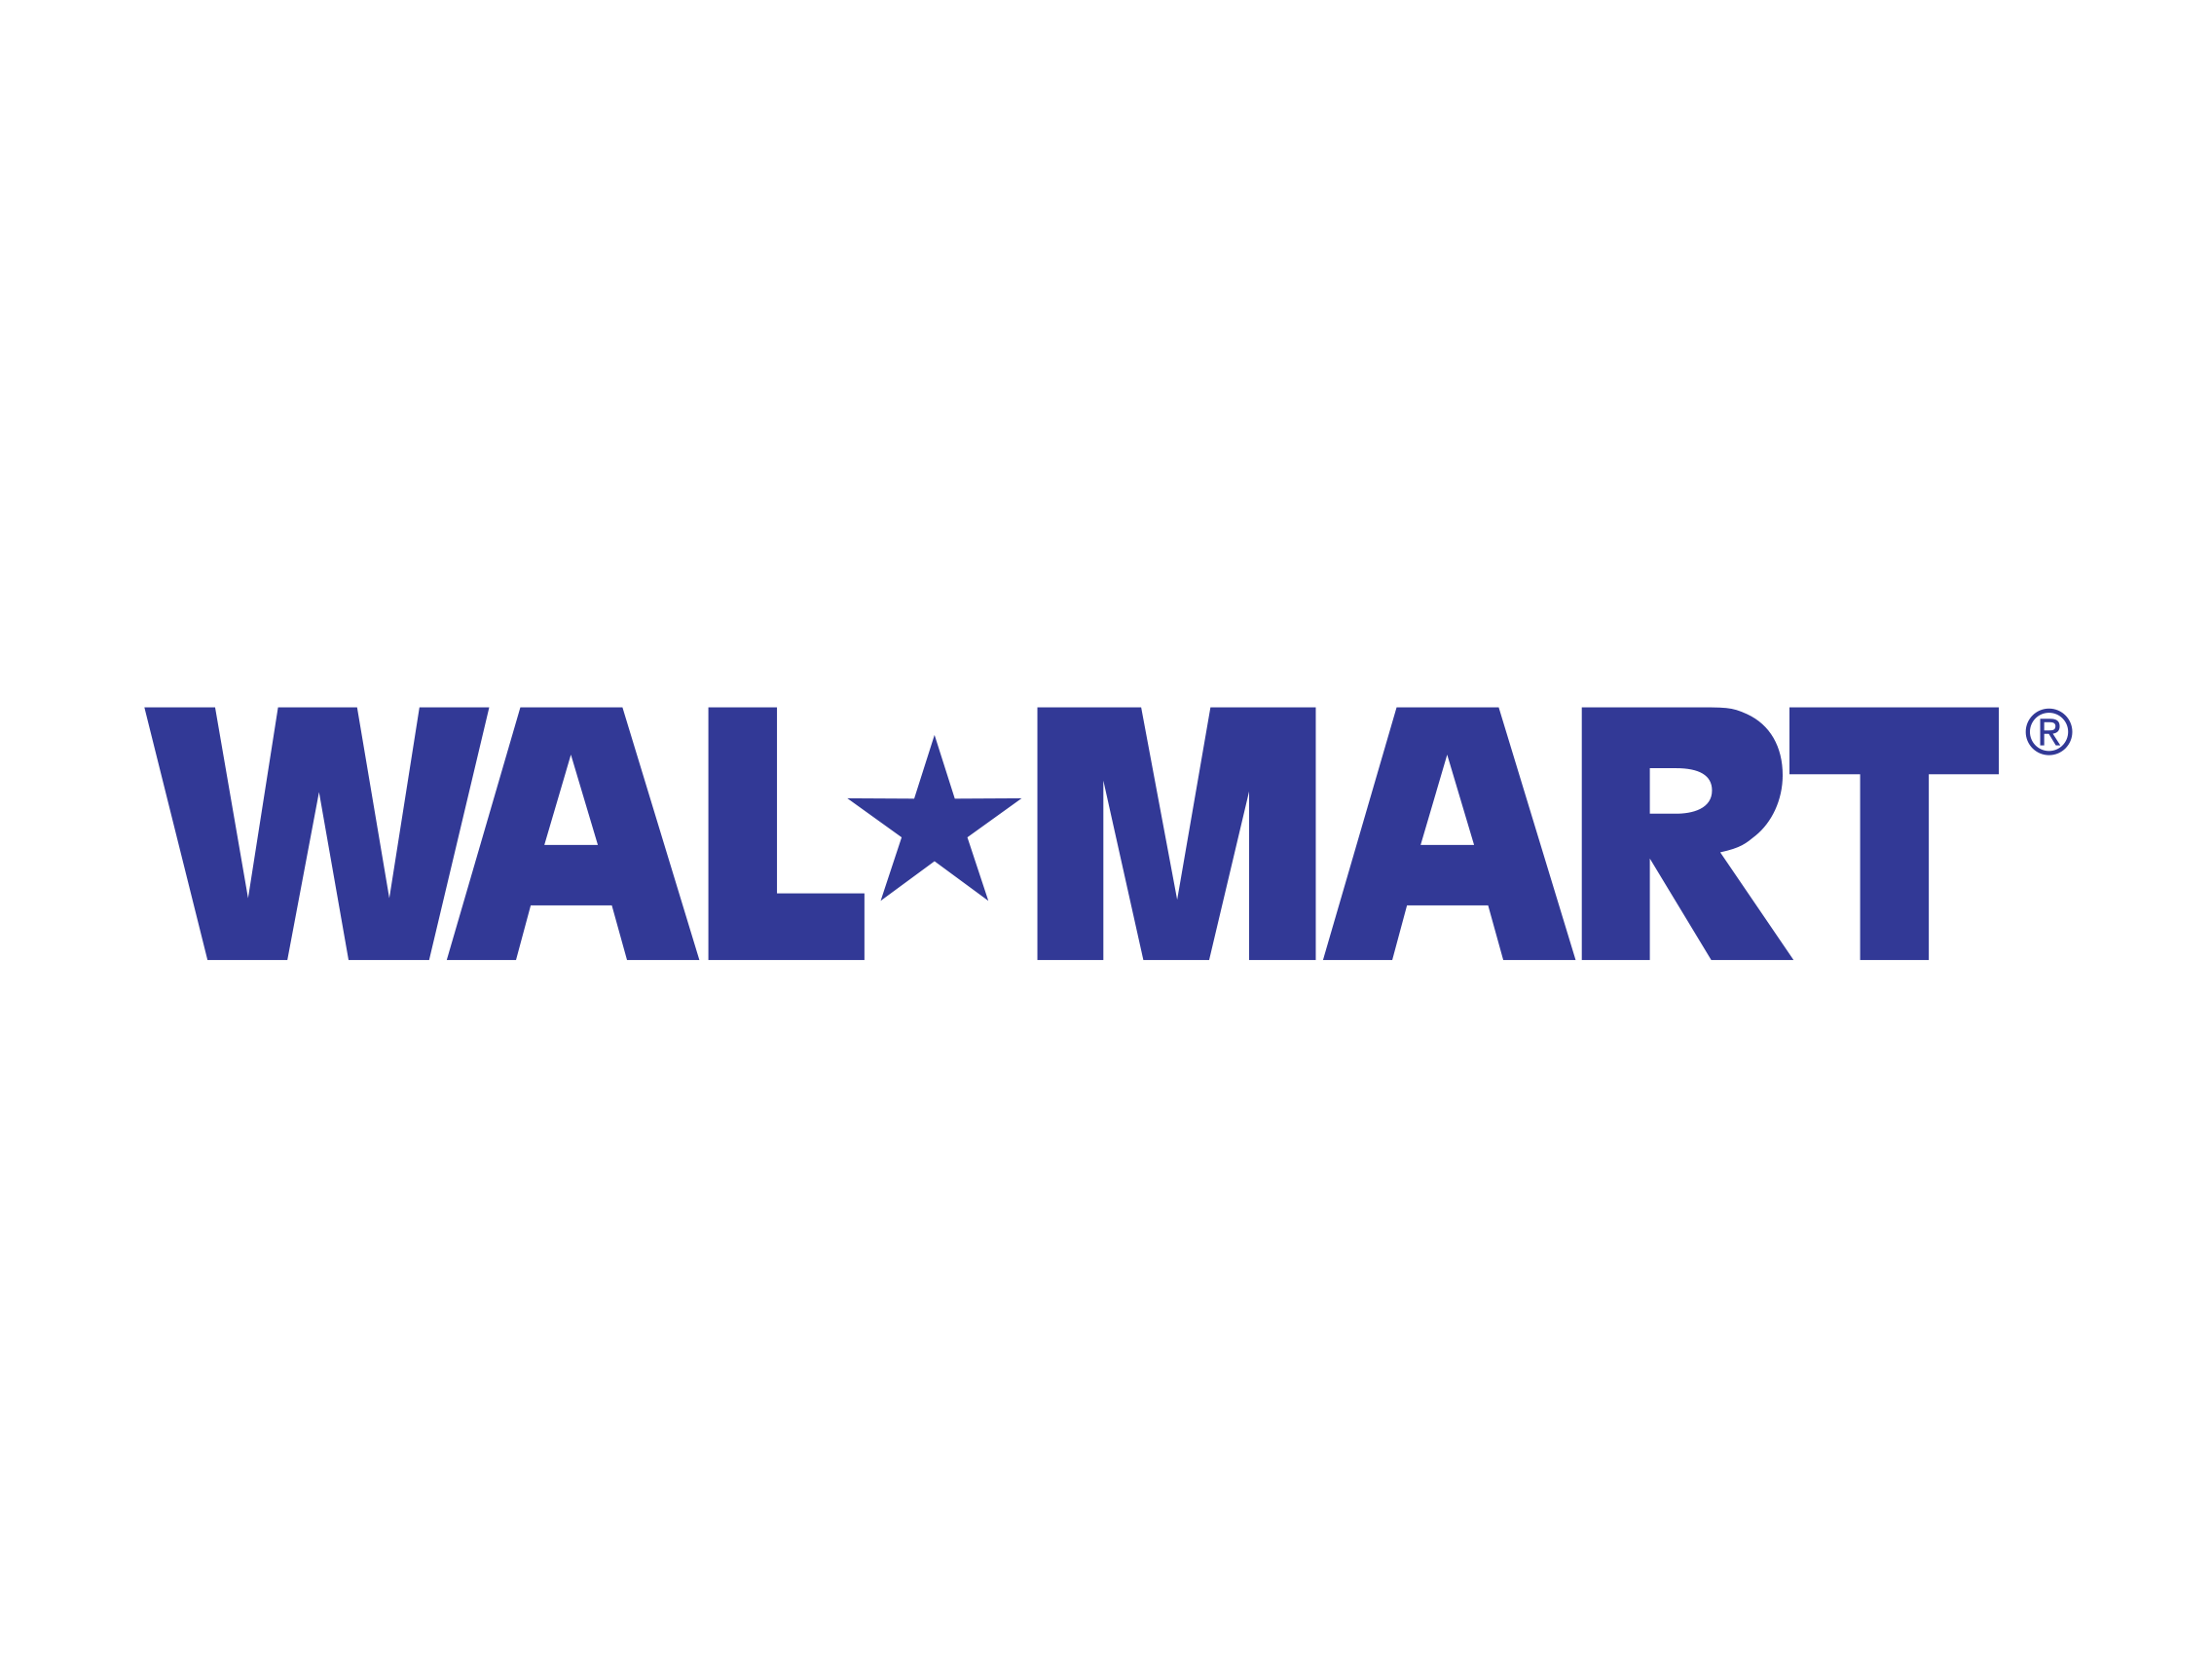 Walmart clipart money svg black and white download Walmart Logo Transparent PNG Pictures - Free Icons and PNG Backgrounds svg black and white download